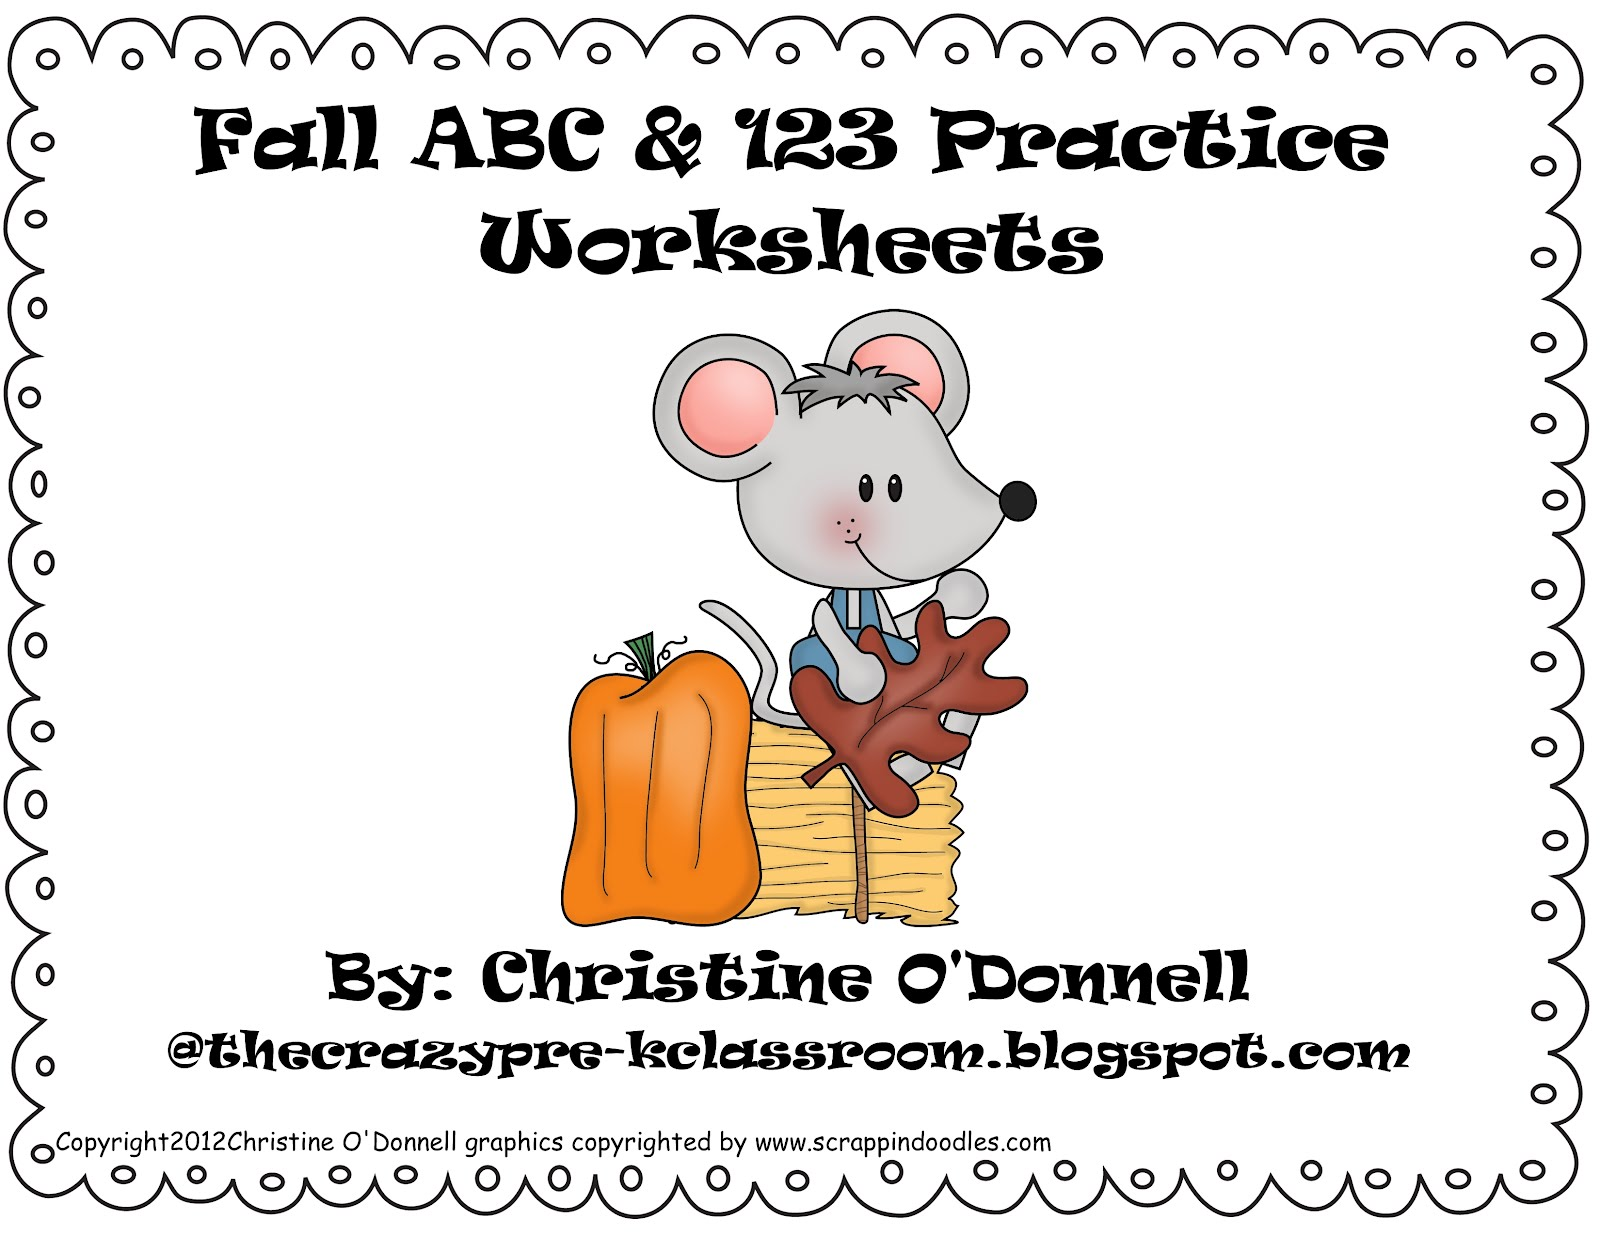 Worksheets Free Abc Worksheets For Pre-k the crazy pre k classroom fall freebie themed abc and 123 worksheets deanna jump reaches 1000000 00 on tpt